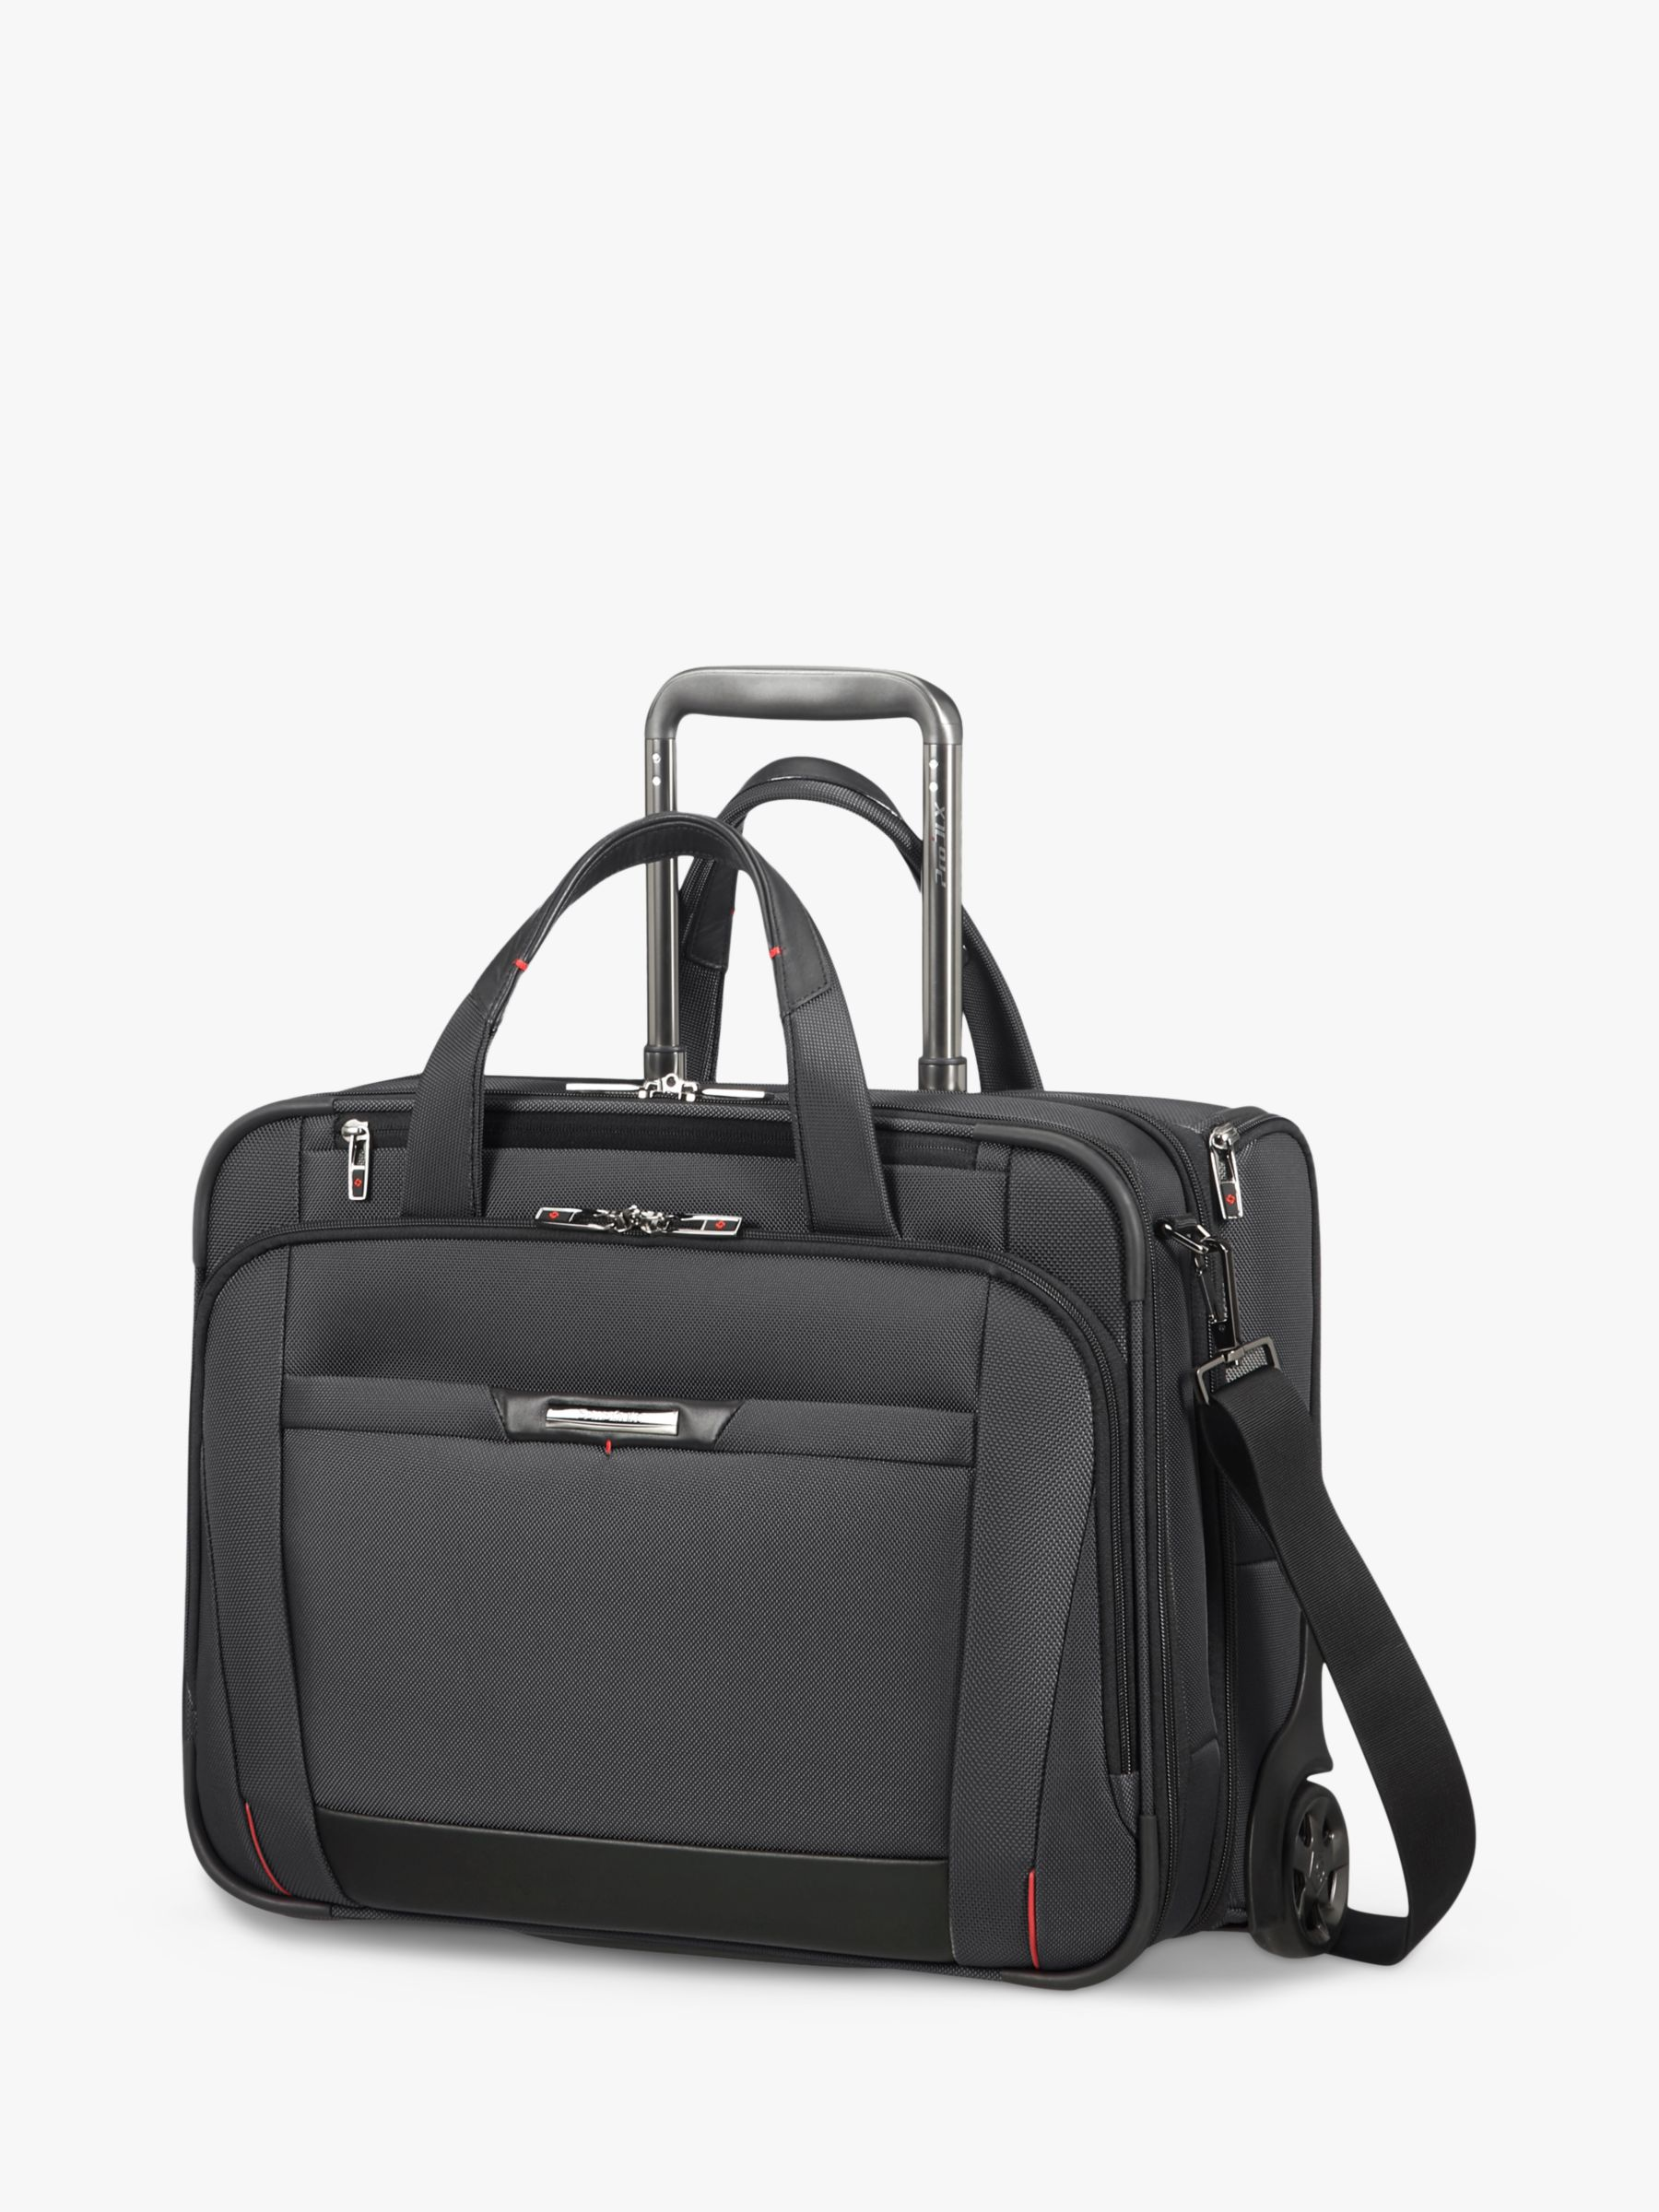 Samsonite Samsonite Pro Dlx 5 15 Rolling Briefcase, Black